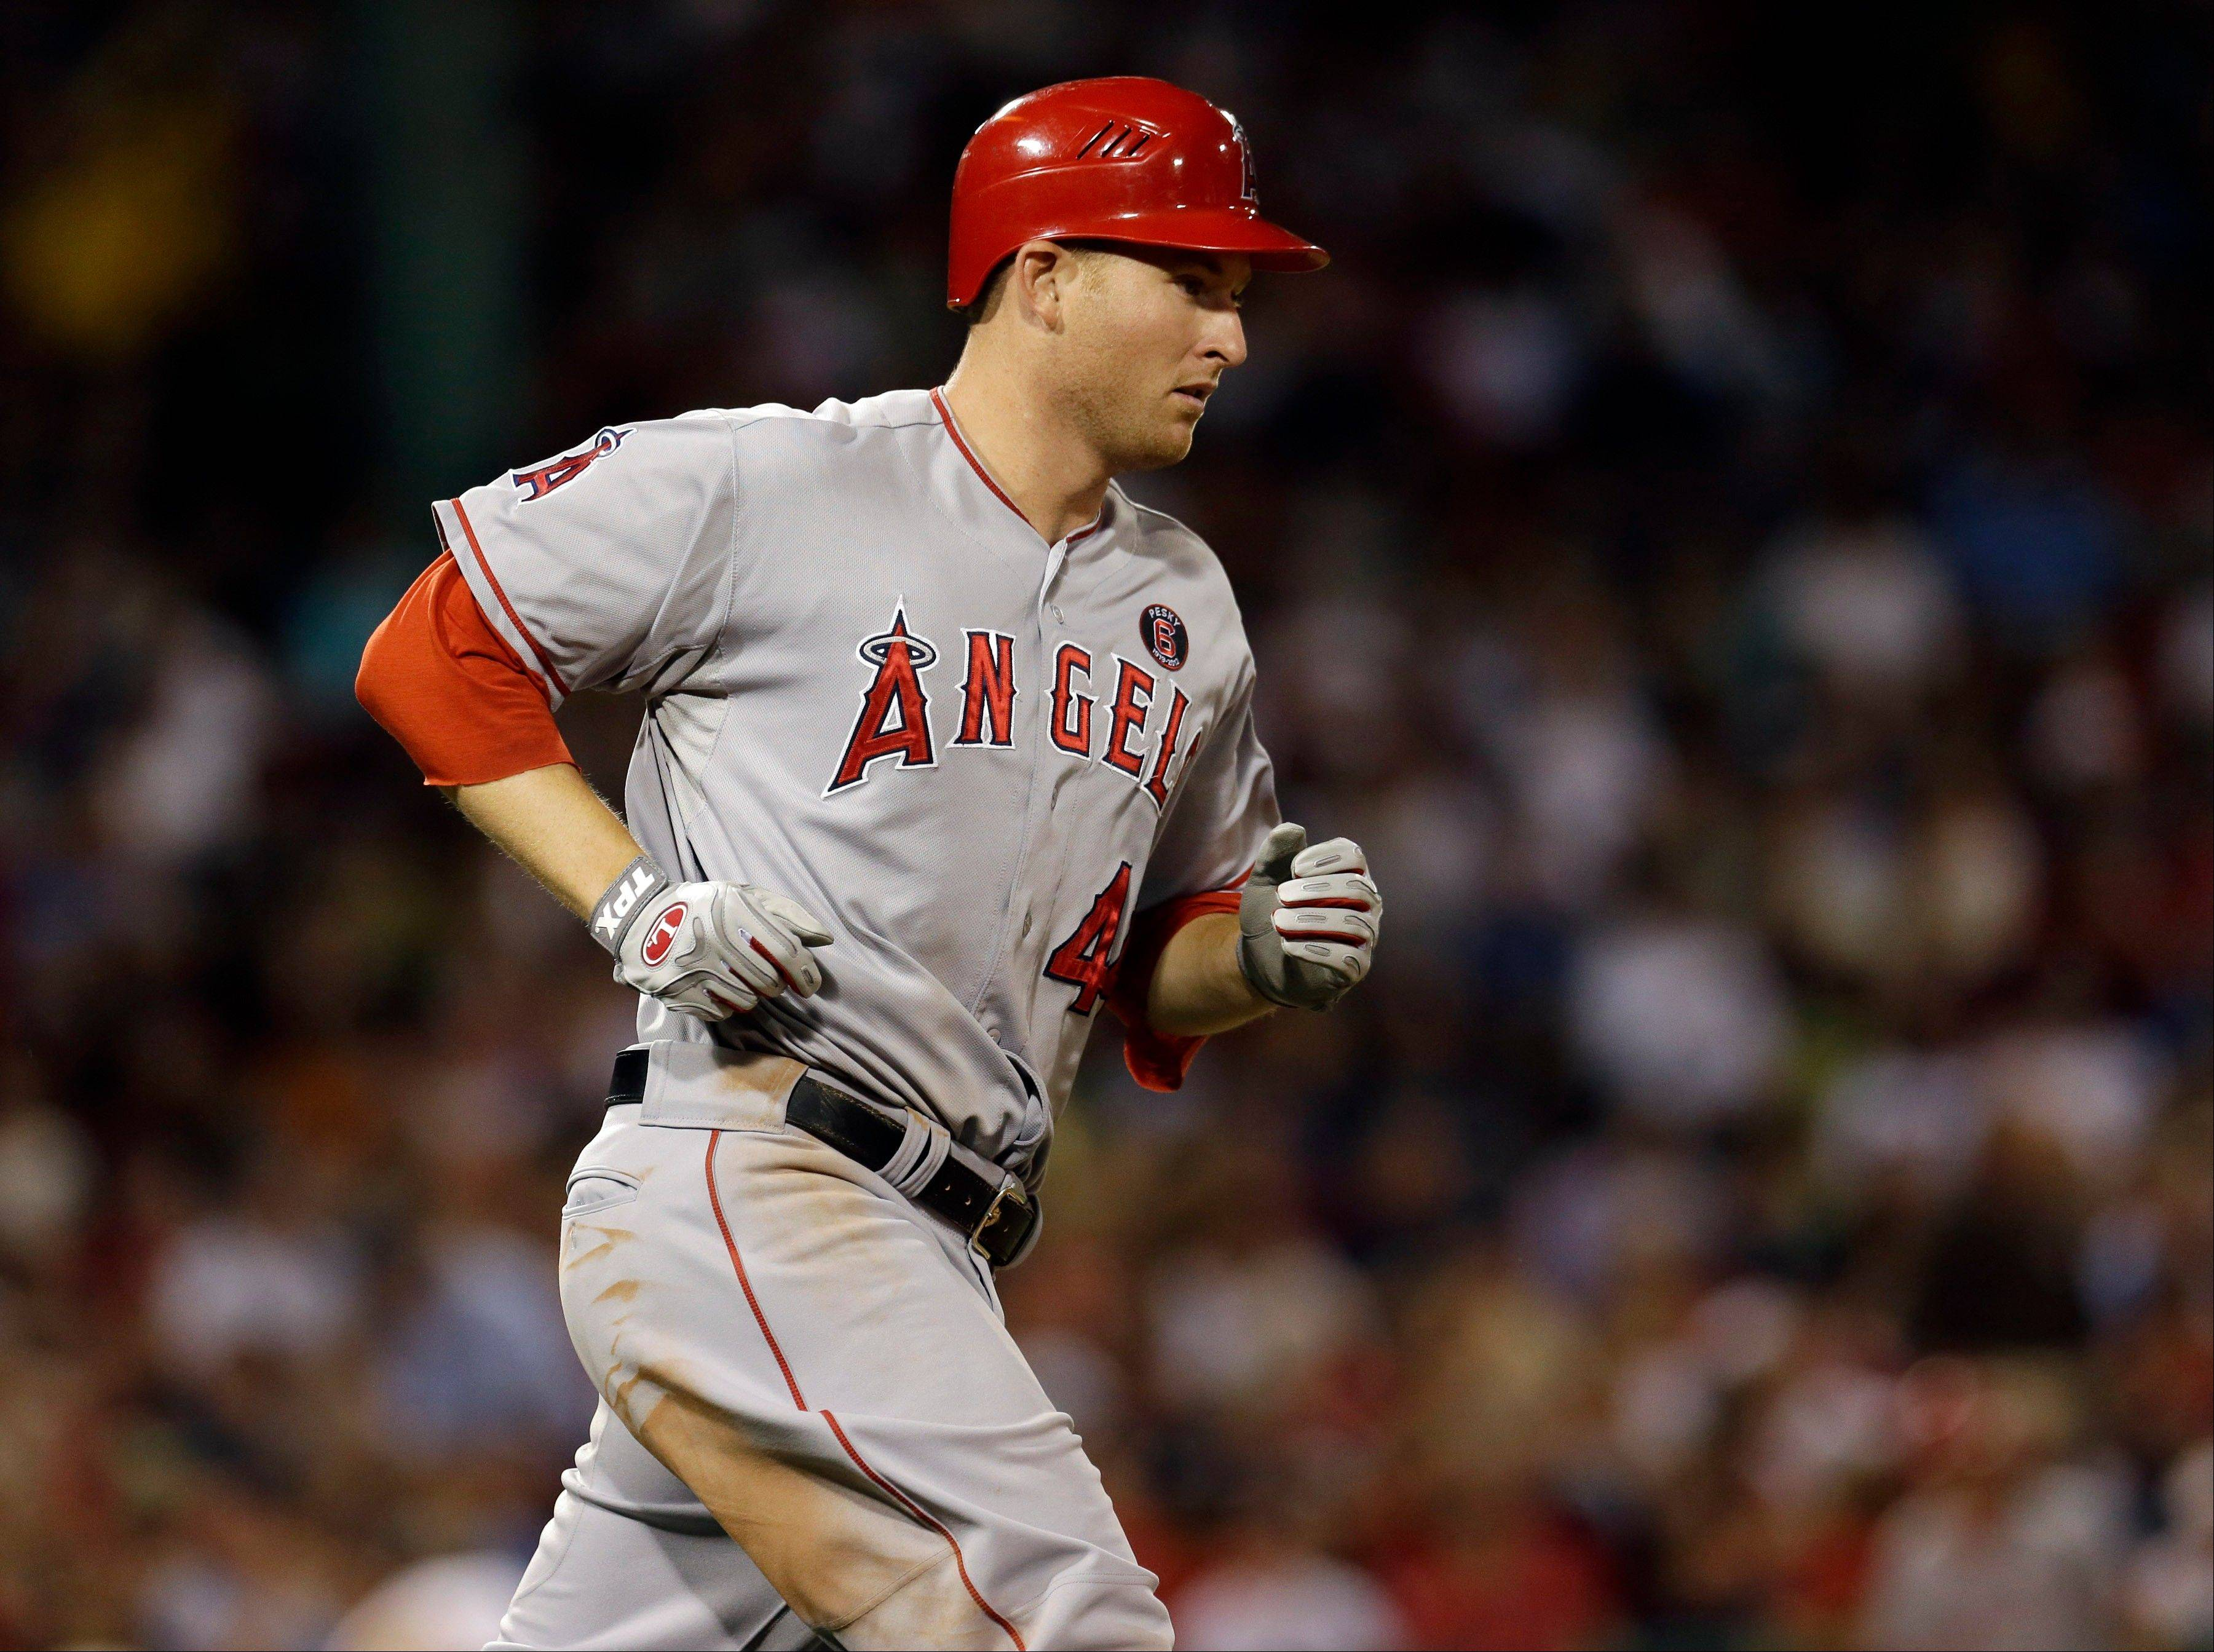 The Angels' Mark Trumbo runs to first after hitting a two-run home run against the Red Sox during the fifth inning Tuesday in Boston